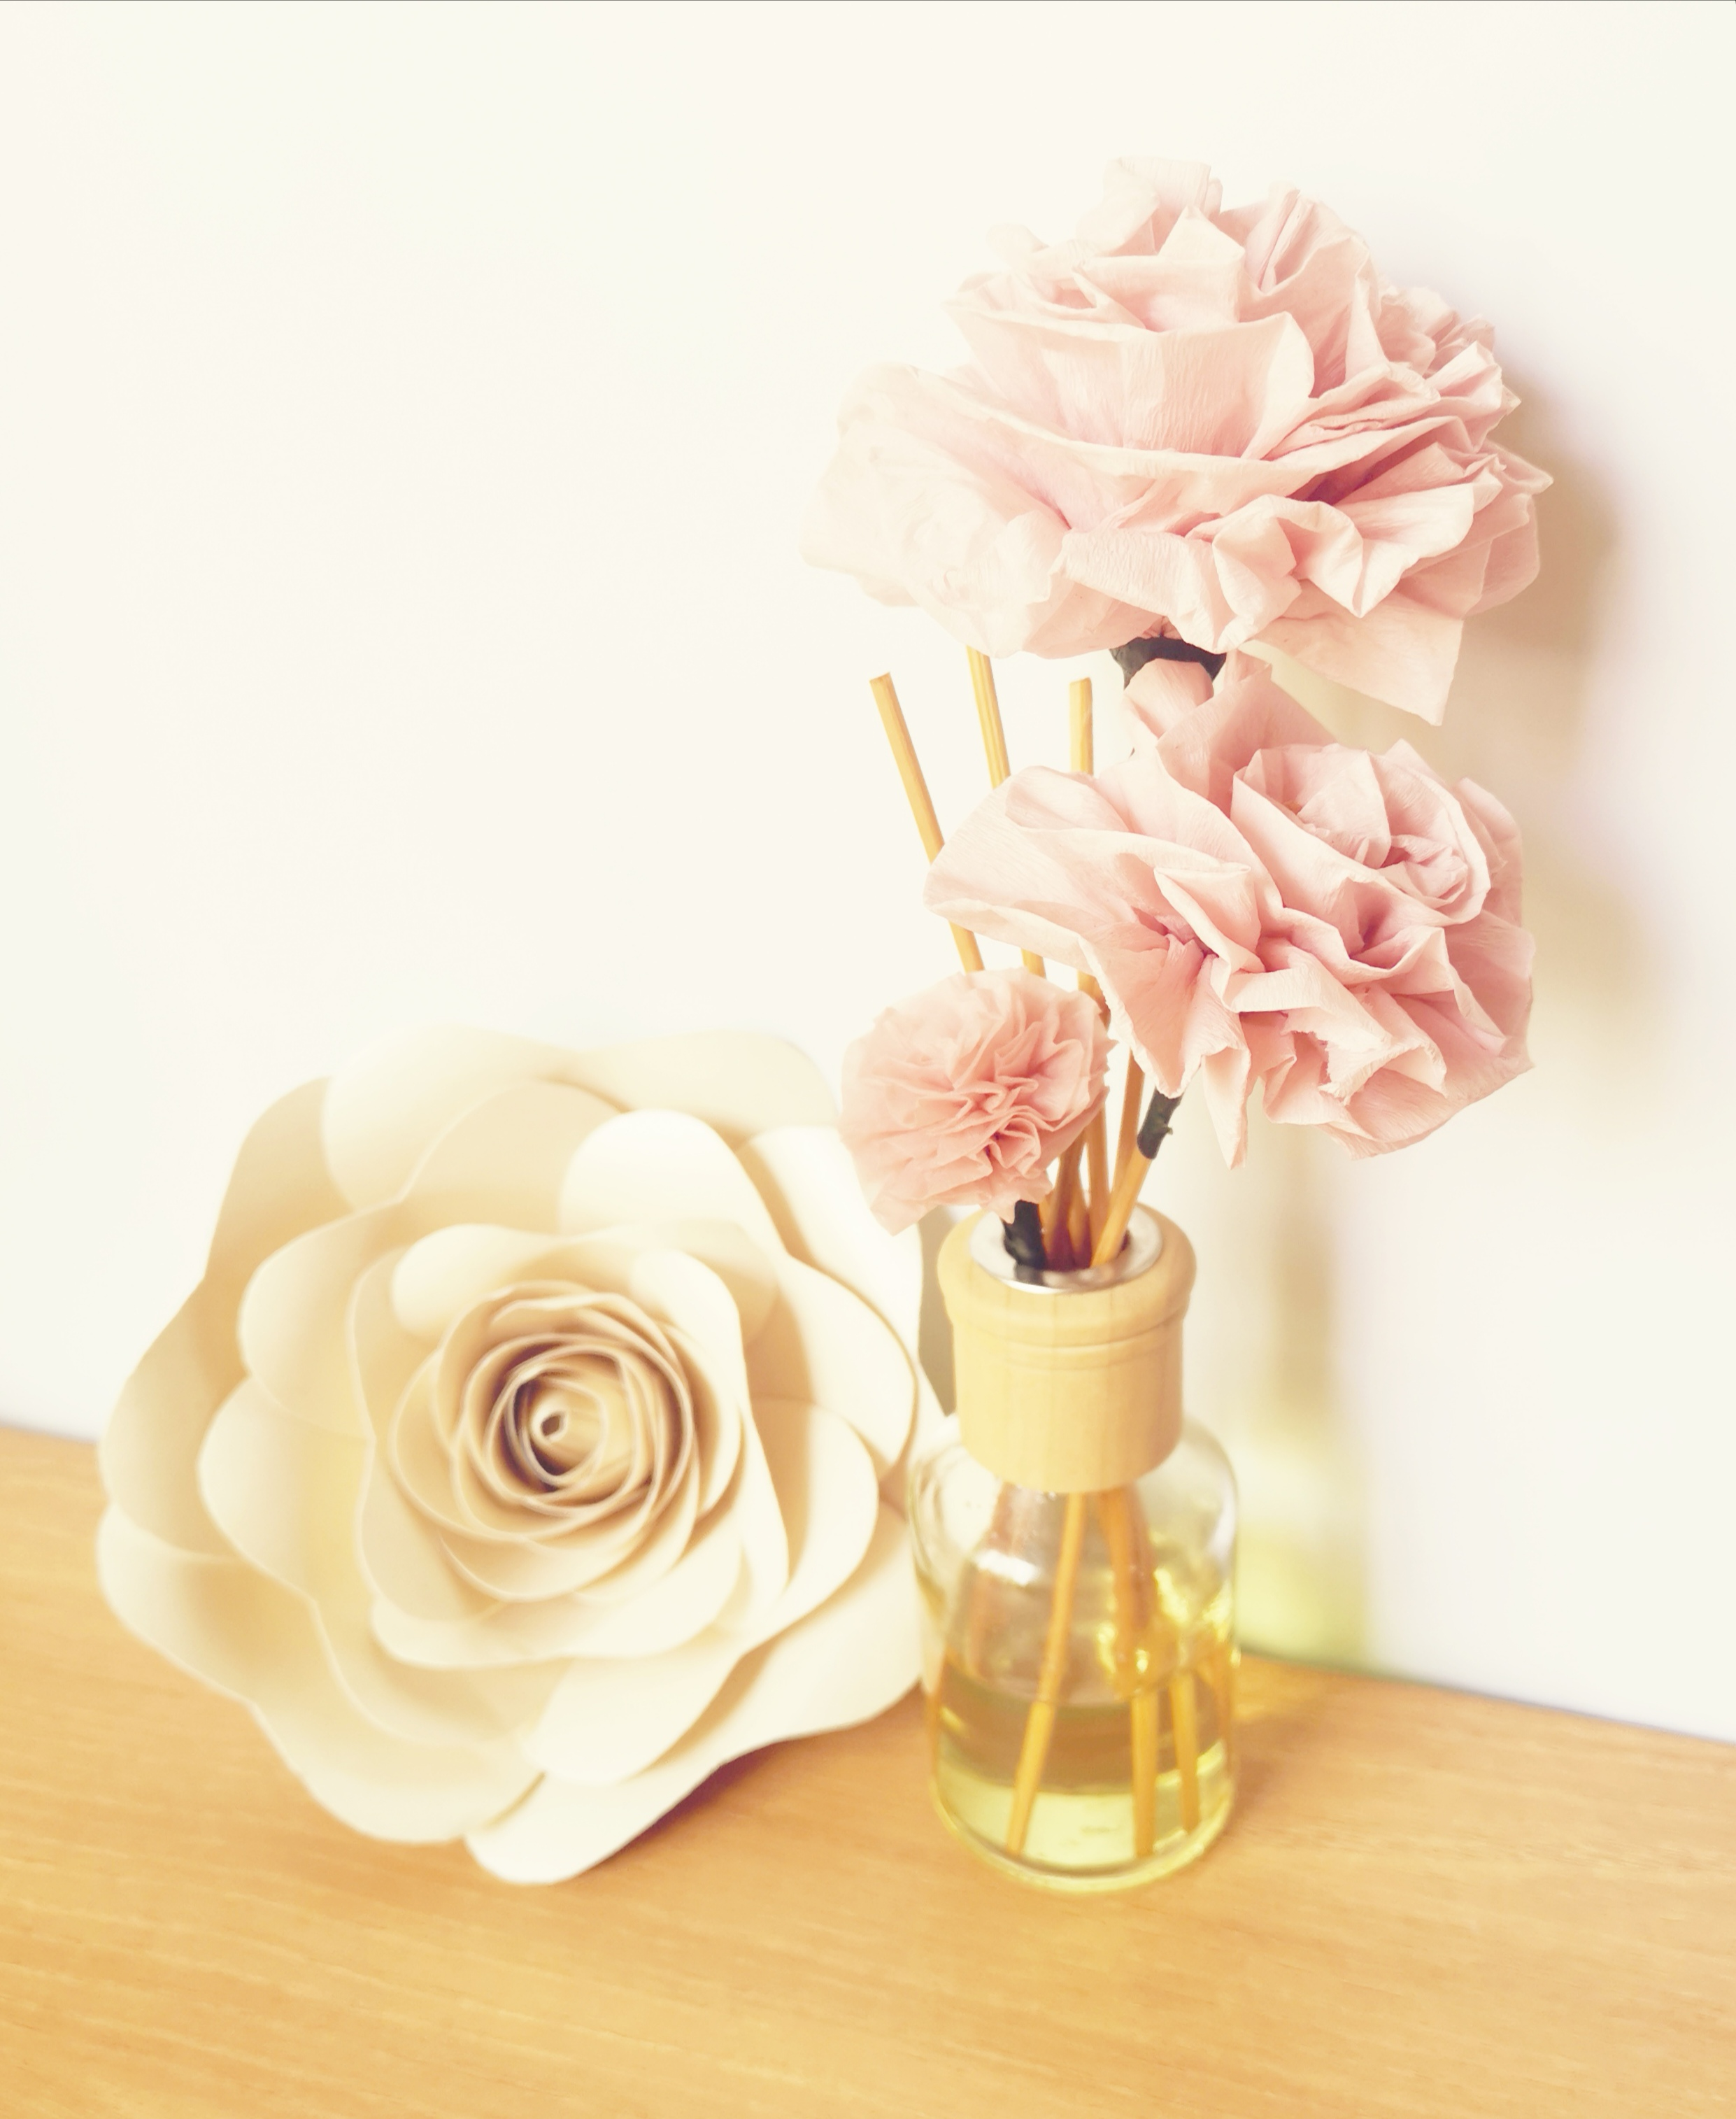 Blooms Diffuser